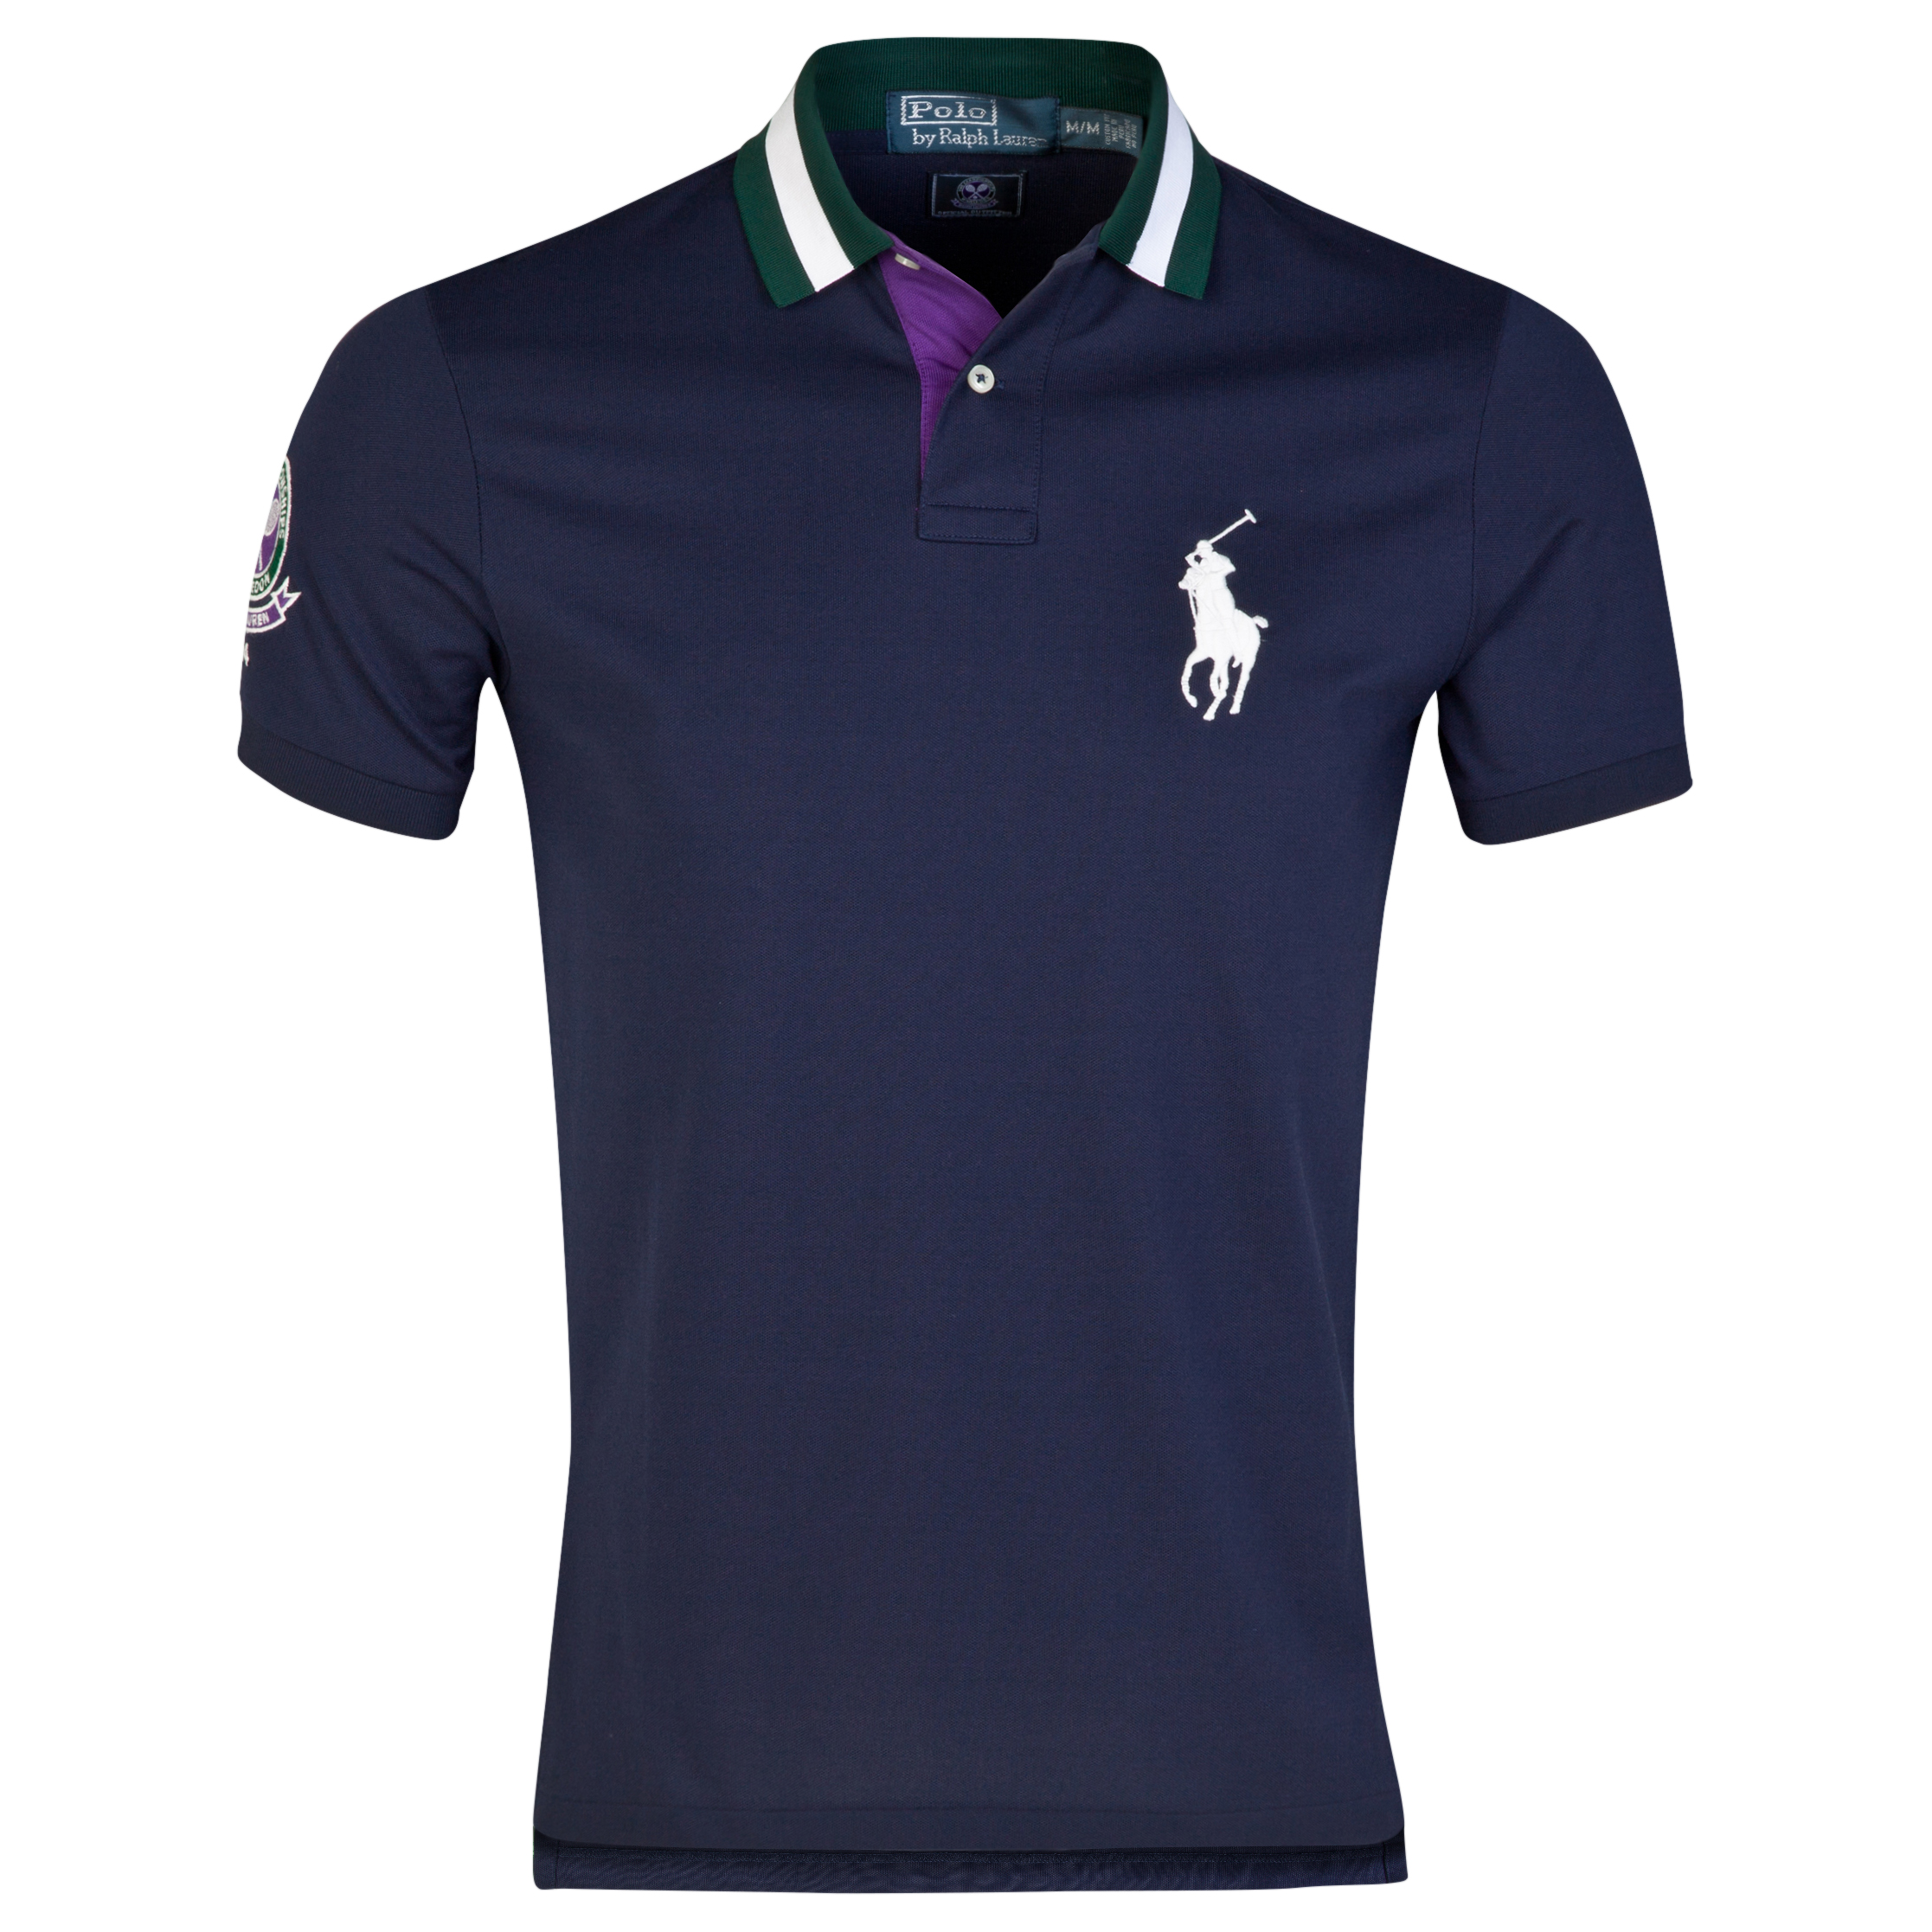 Wimbledon Polo Ralph Lauren Ball Boy Polo - French Navy